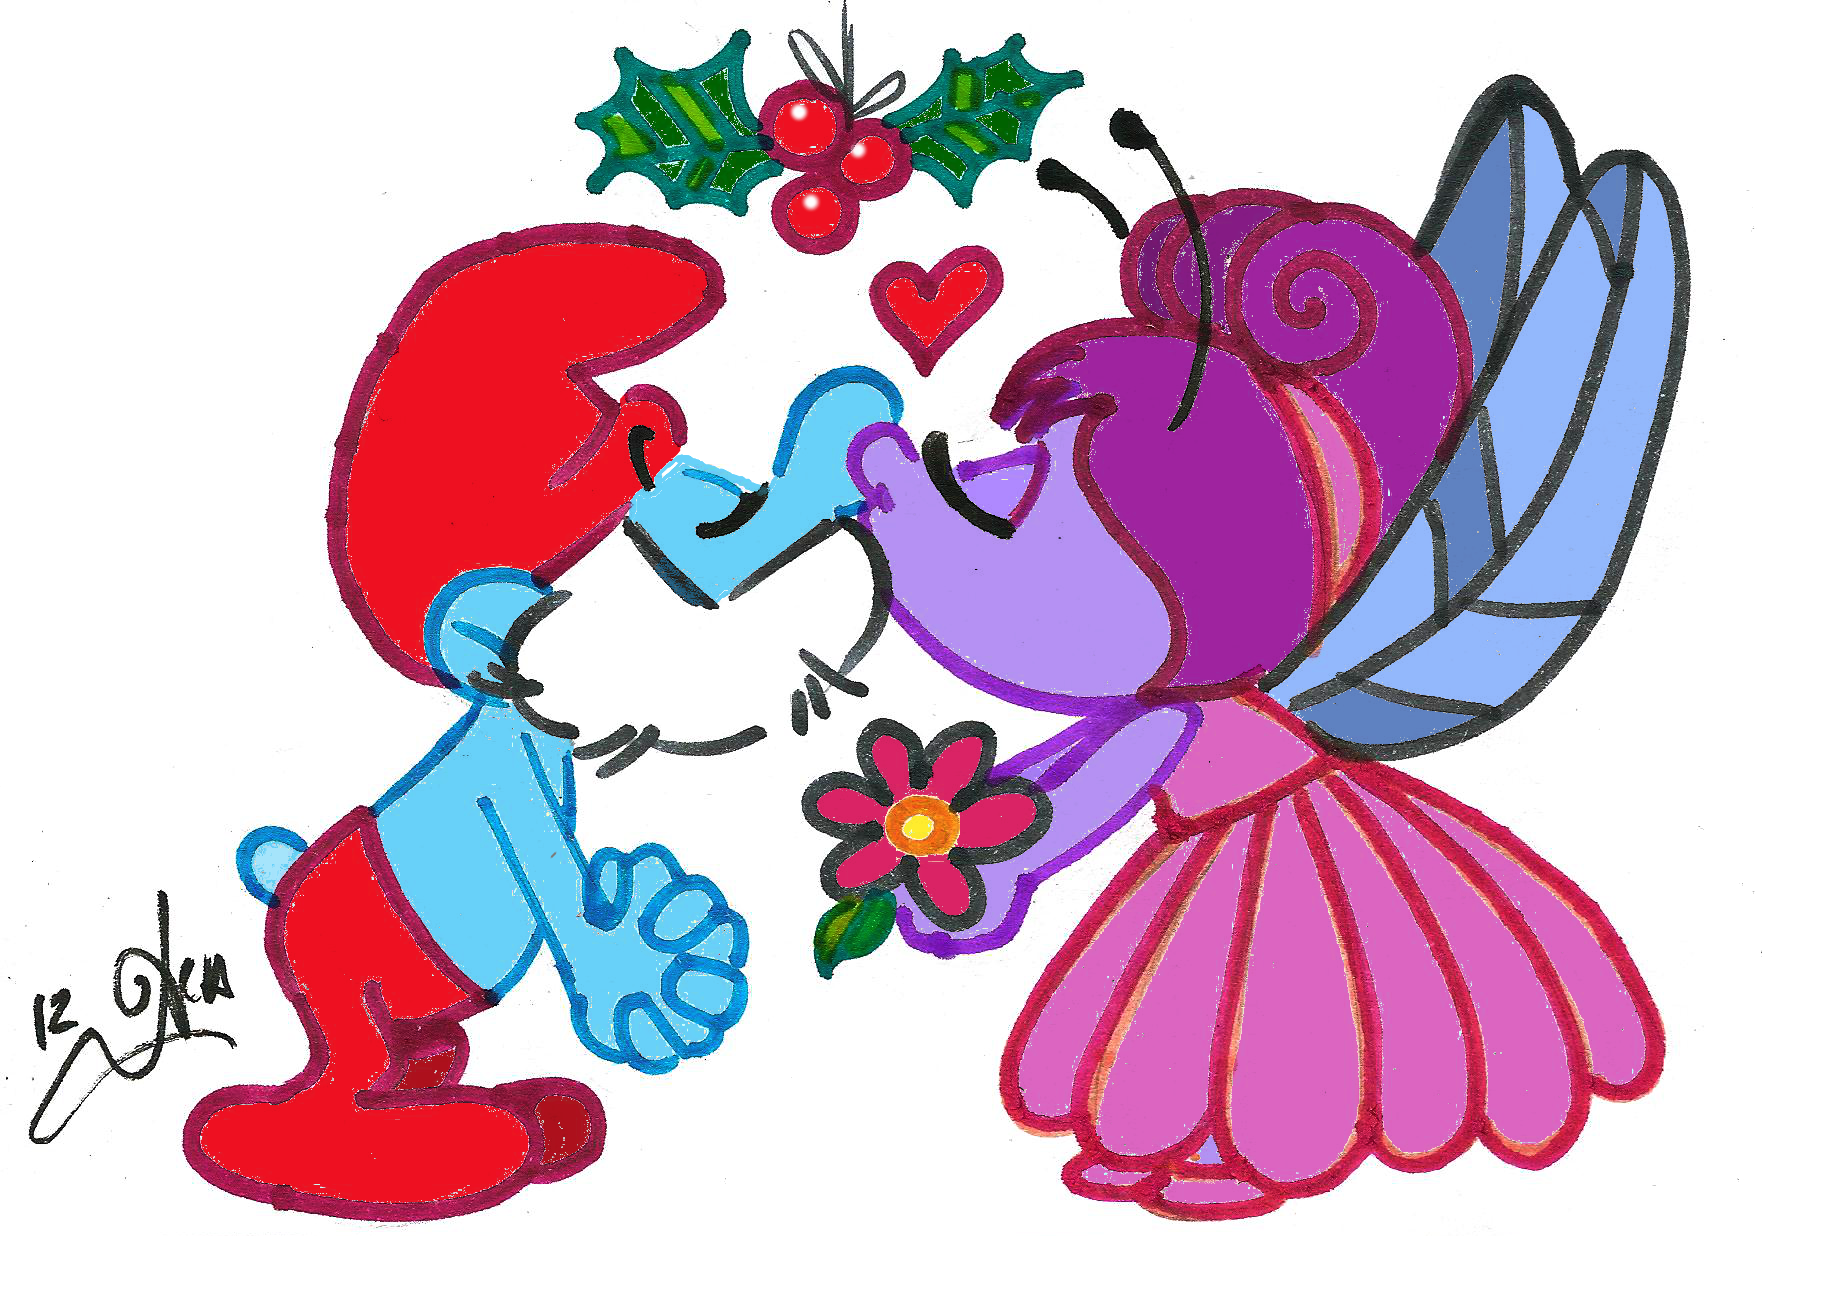 Christmas kiss clipart image black and white library Smurfy Christmas Art Gallery image black and white library